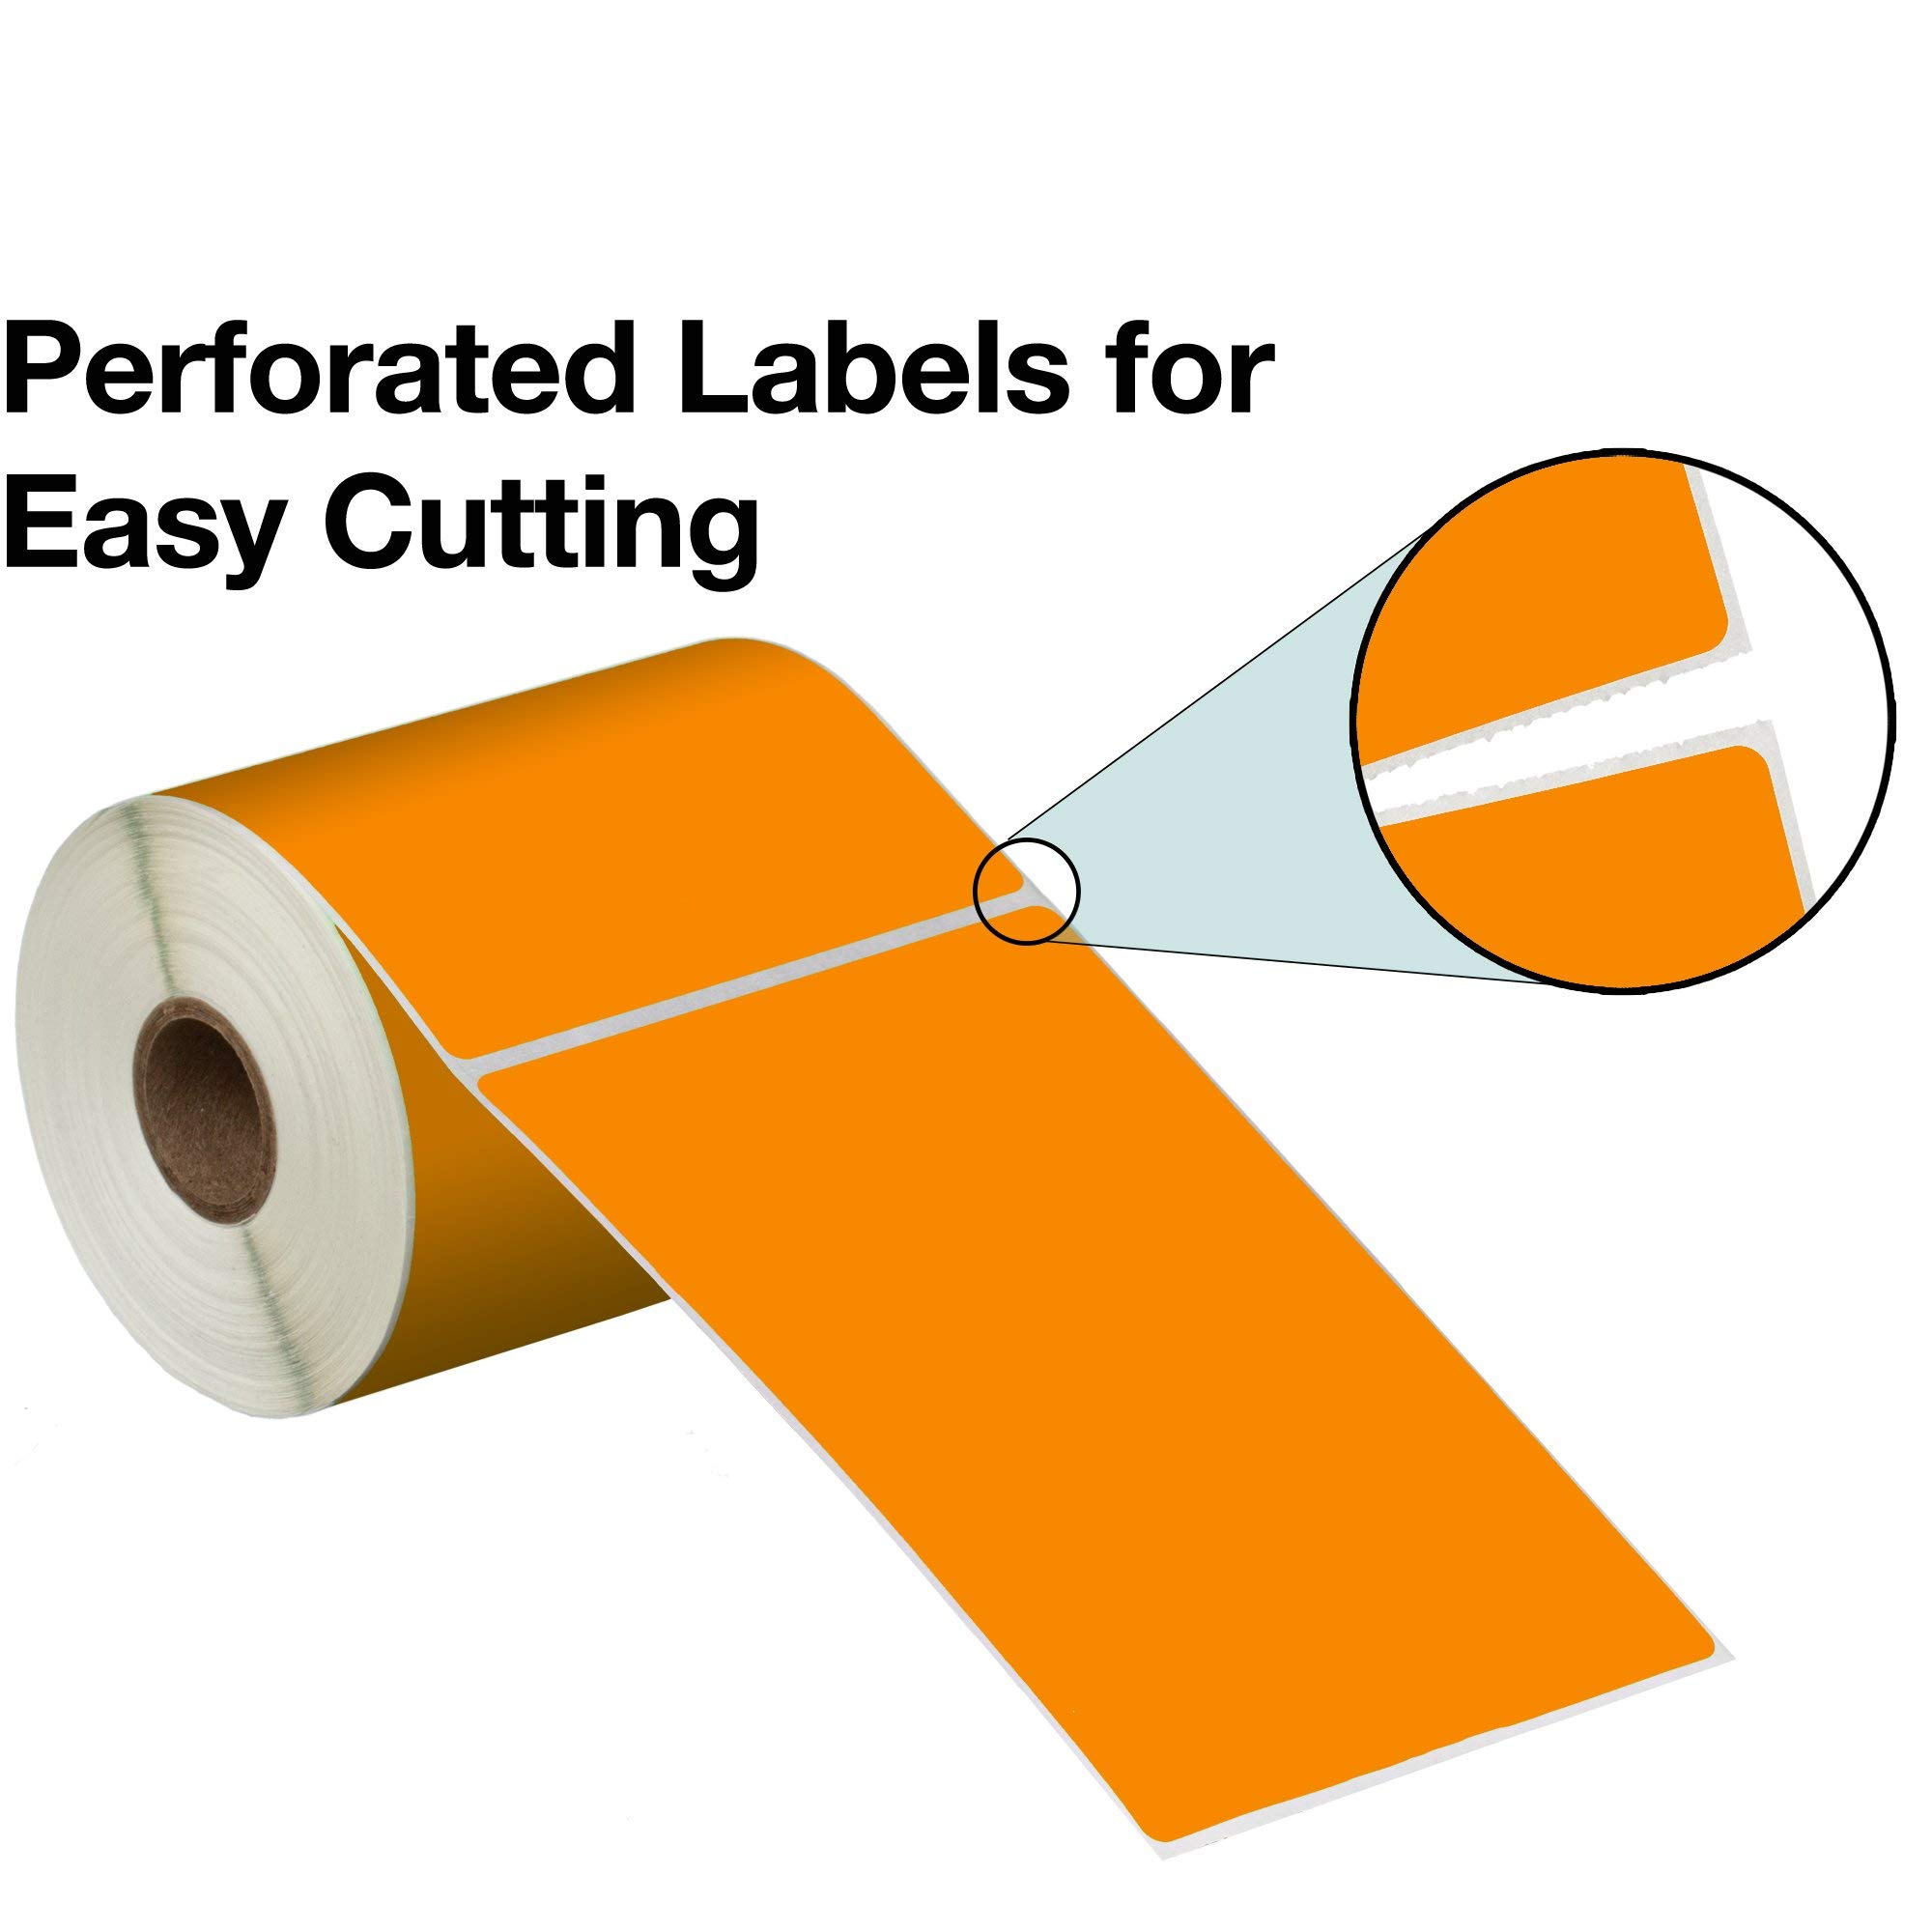 Direct Thermal Labels - 4'' x 6'' - Orange - 1'' Core - Works with Zebra Thermal Desktop Printers, Datamax, Sato, Intermec and Honeywell Printers - Made in USA